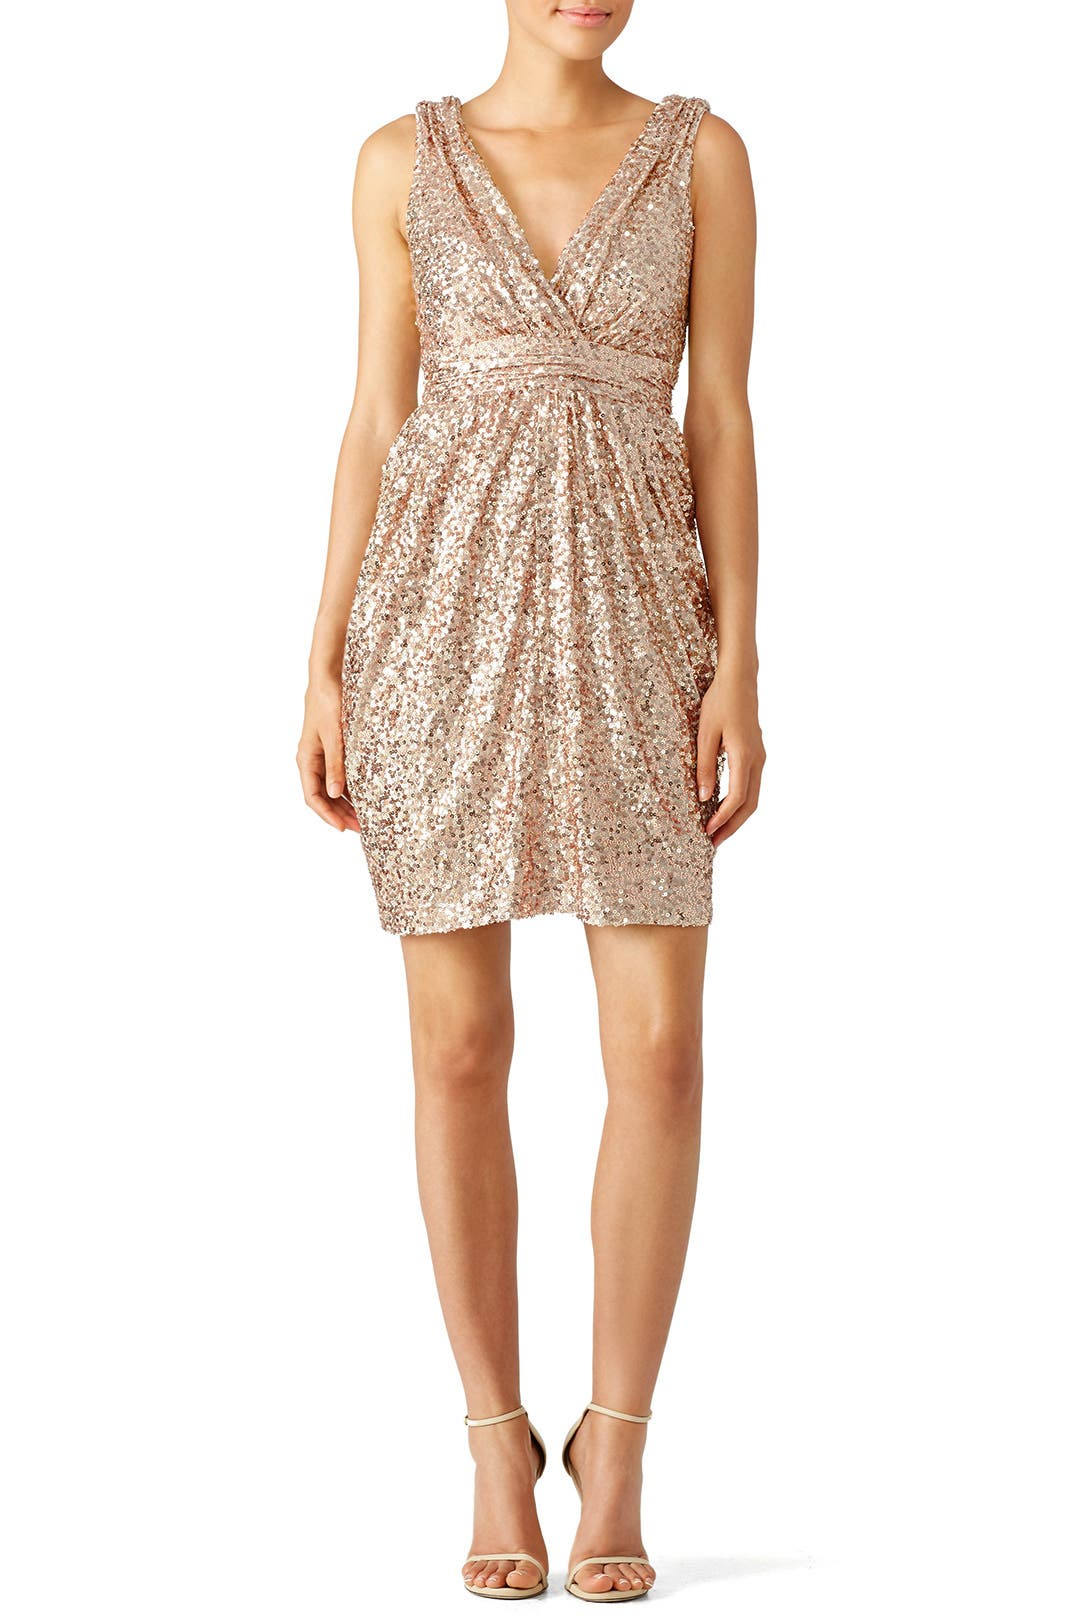 Designer Clothing Rental Online Badgley Mischka